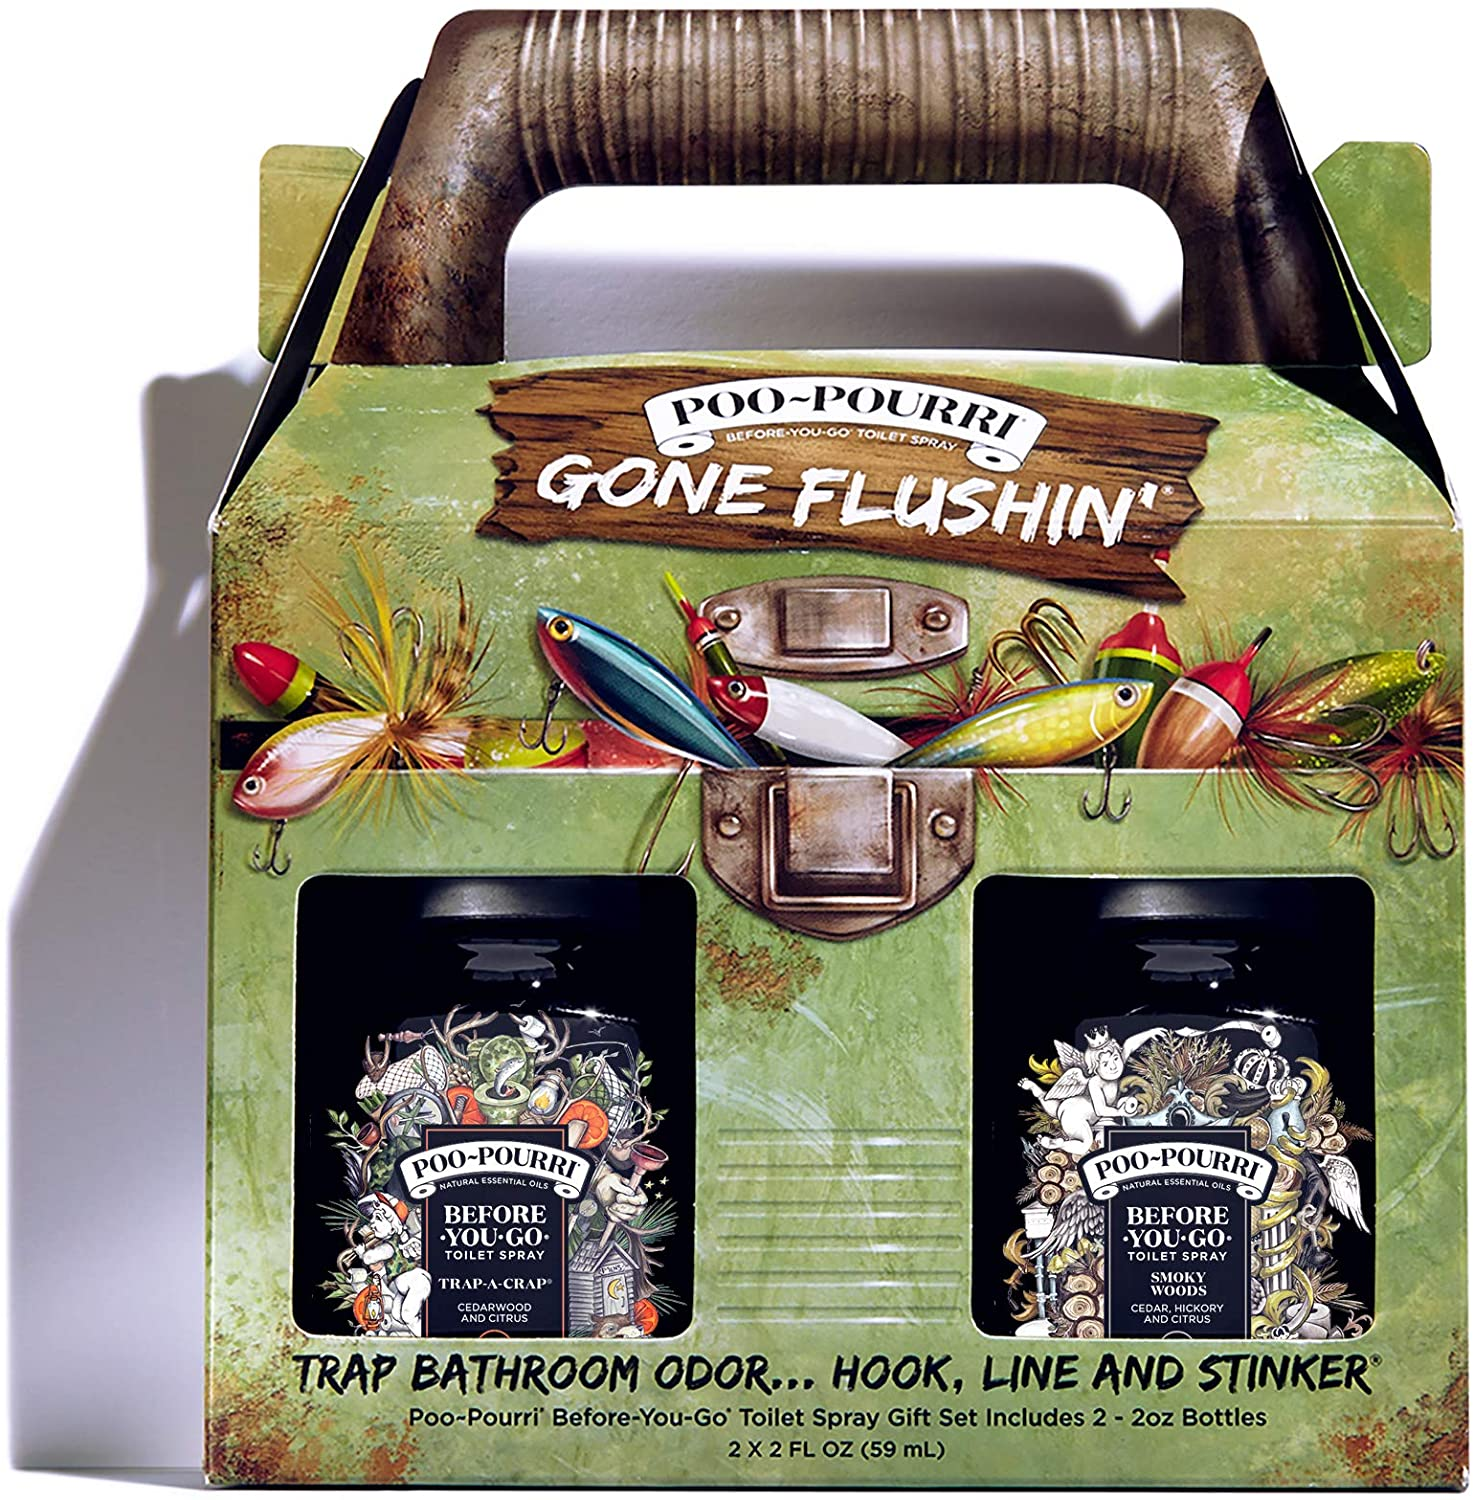 Poo-Pourri Before-You-Go Toilet Spray, Gone Flushin Gift Set of 2, Trap-A-Crap and Smoky Woods Scent